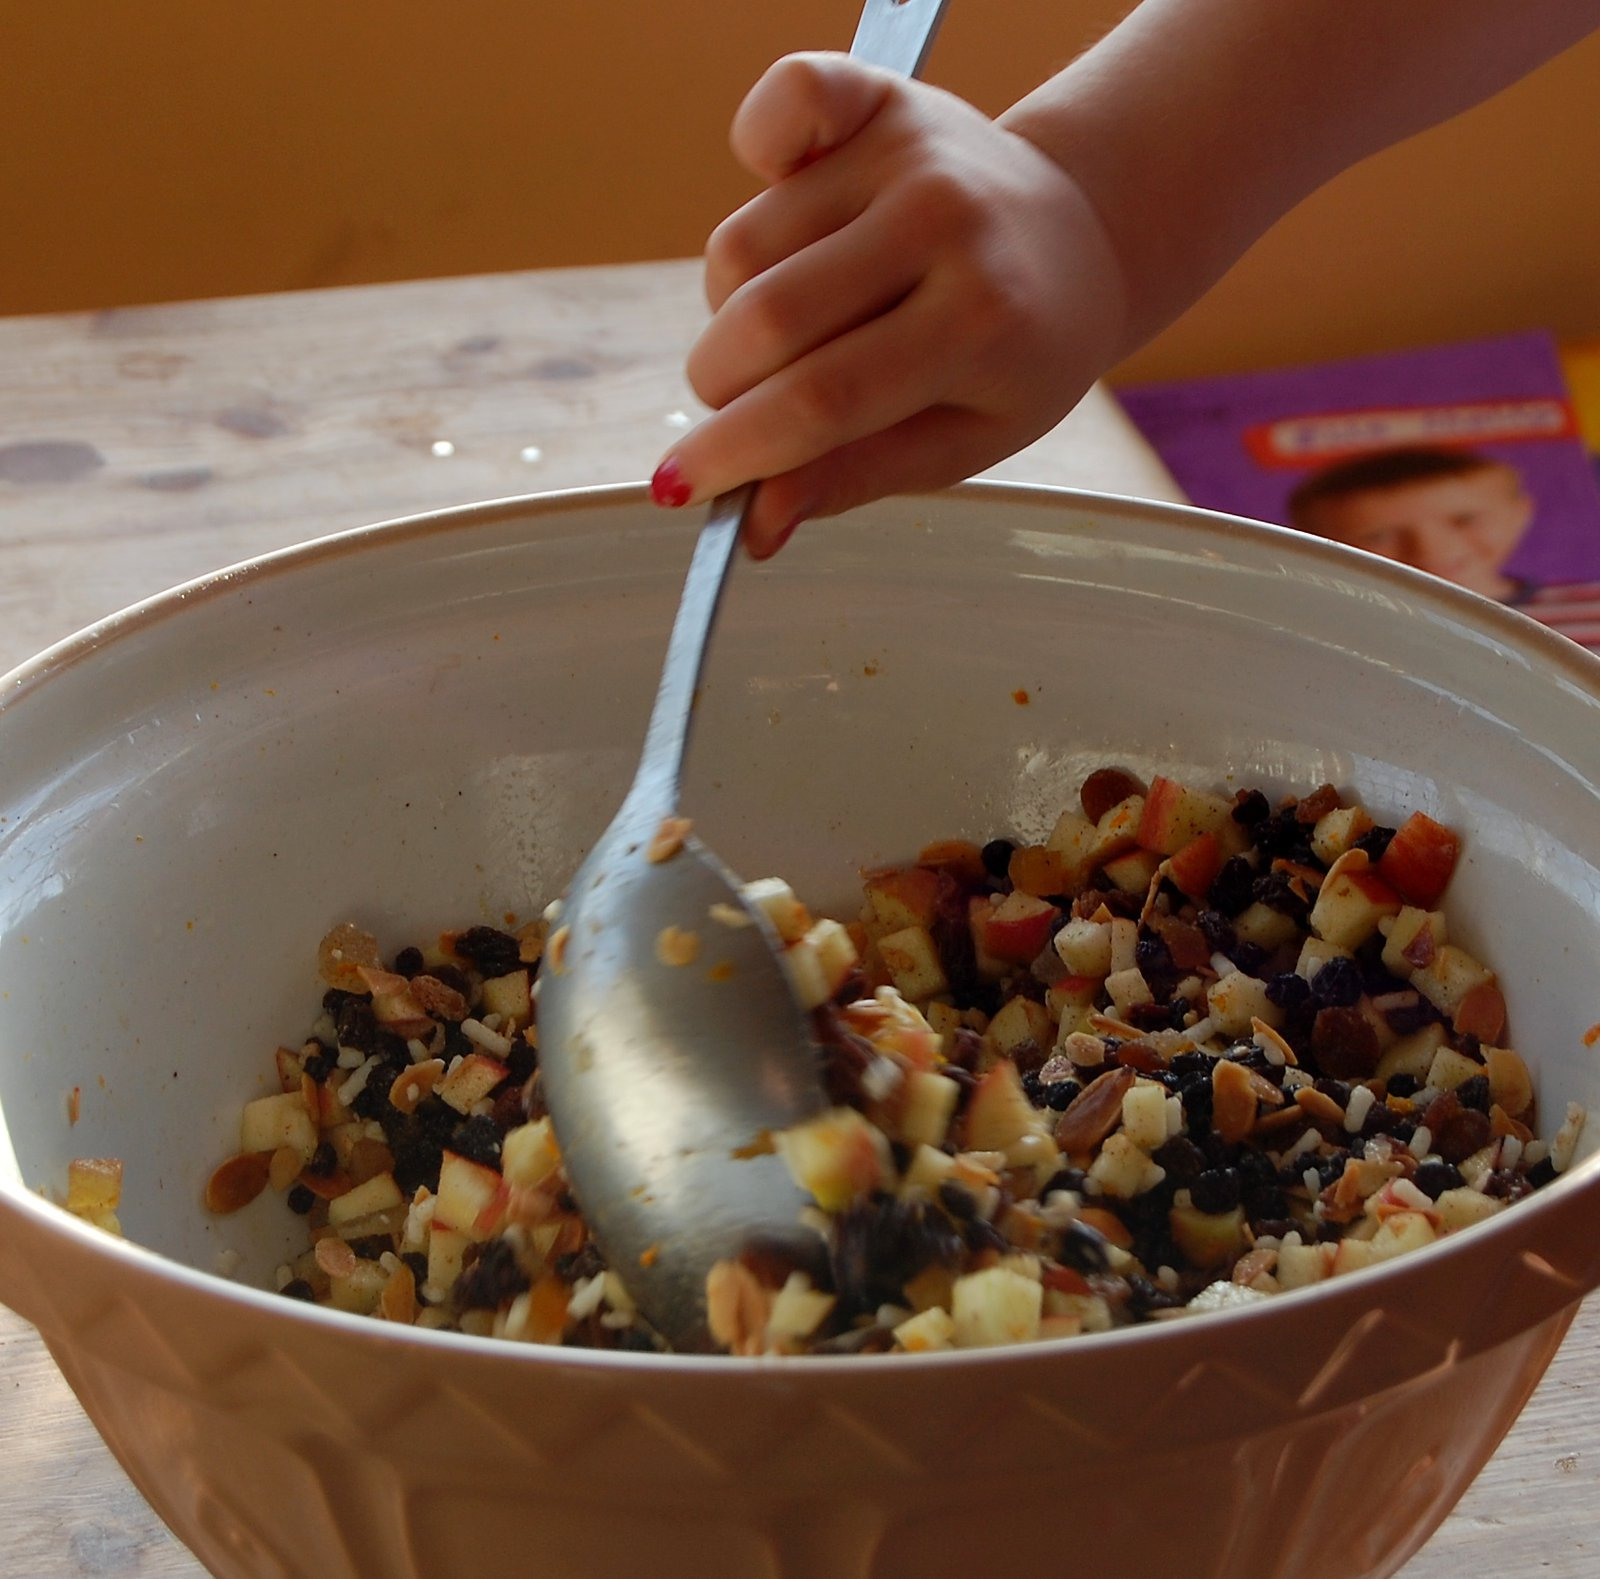 Mixing up the mincemeat